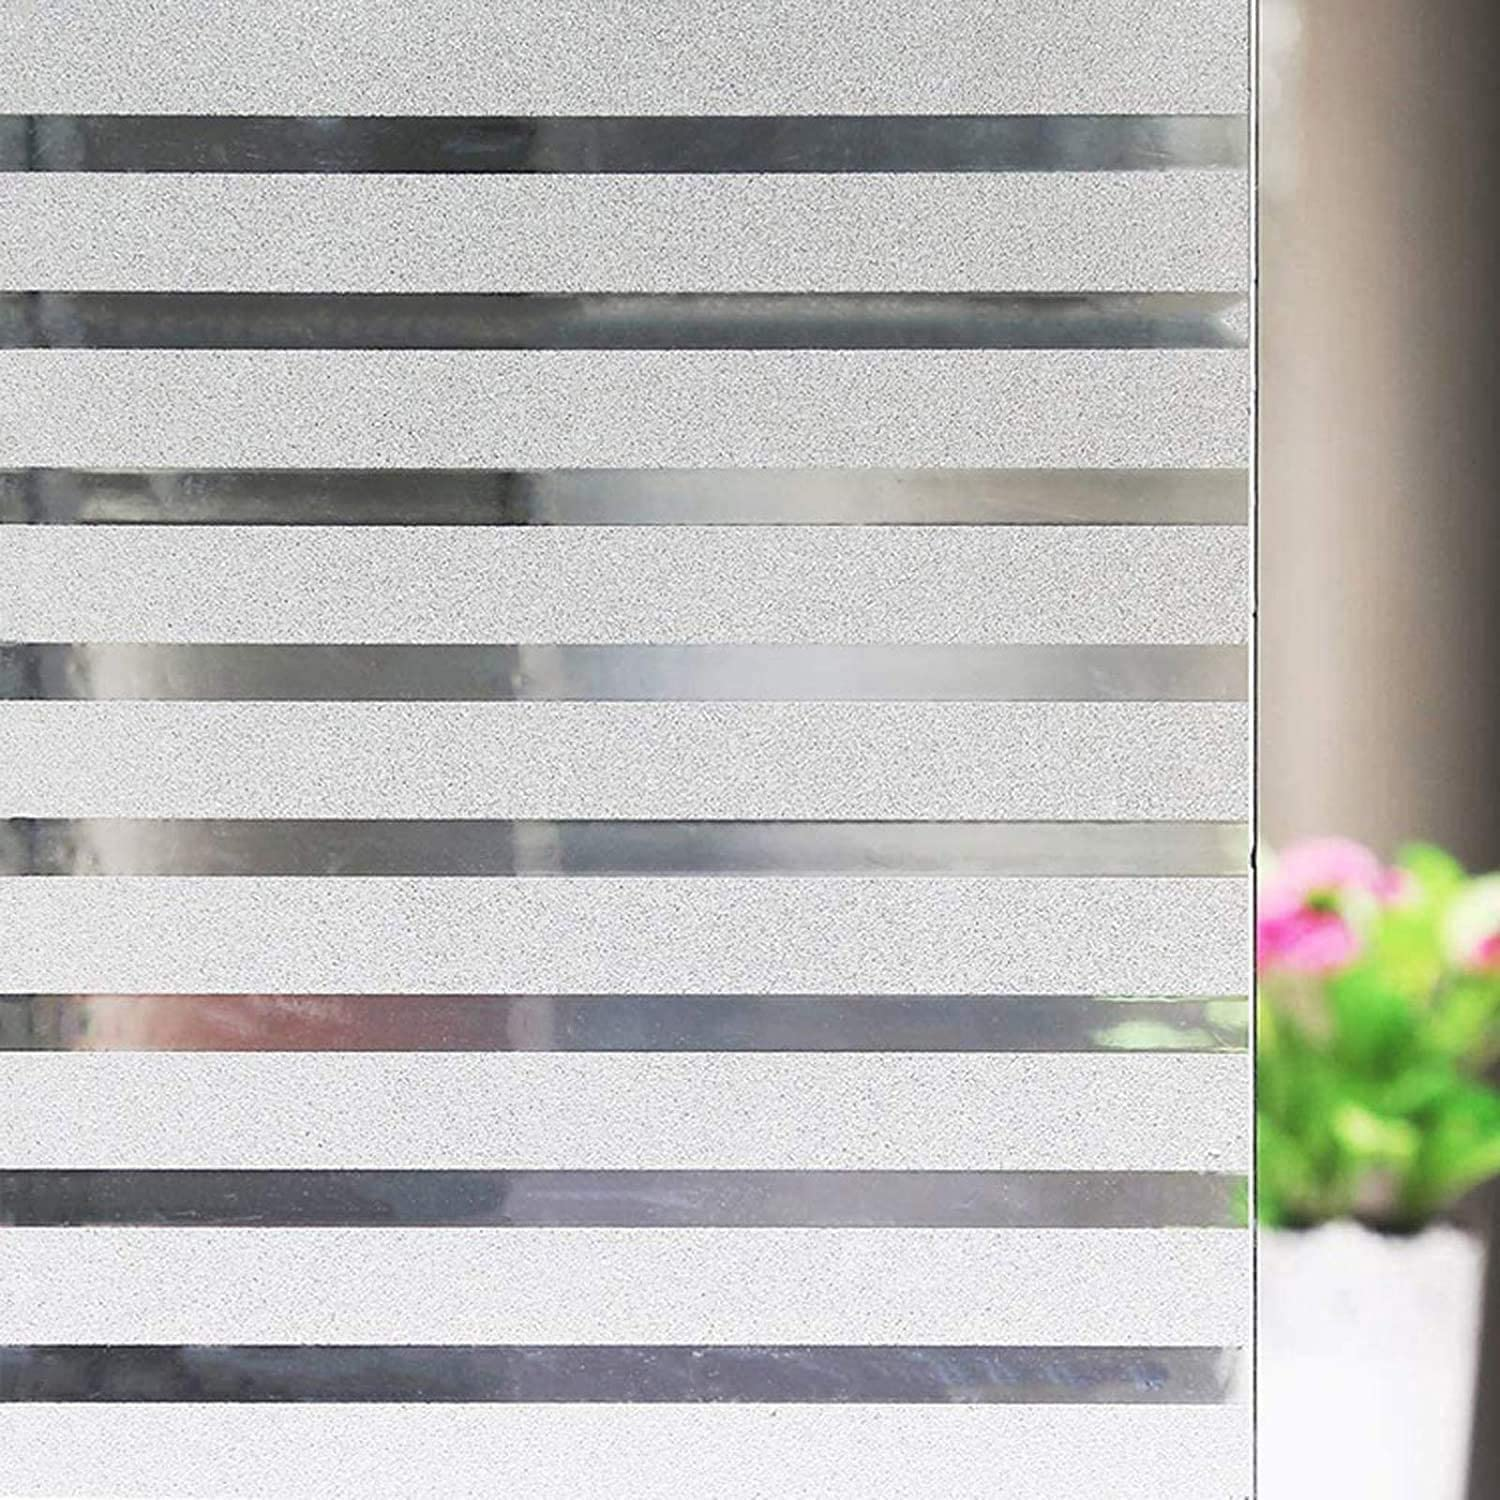 Niviy Frosted Window Film Privacy Window Sticker Non Adhesive Window Vinyl Film Removable Static Cling Window Film UV Protection Striped Pattern for Home Office 35.4 x 118 Inches